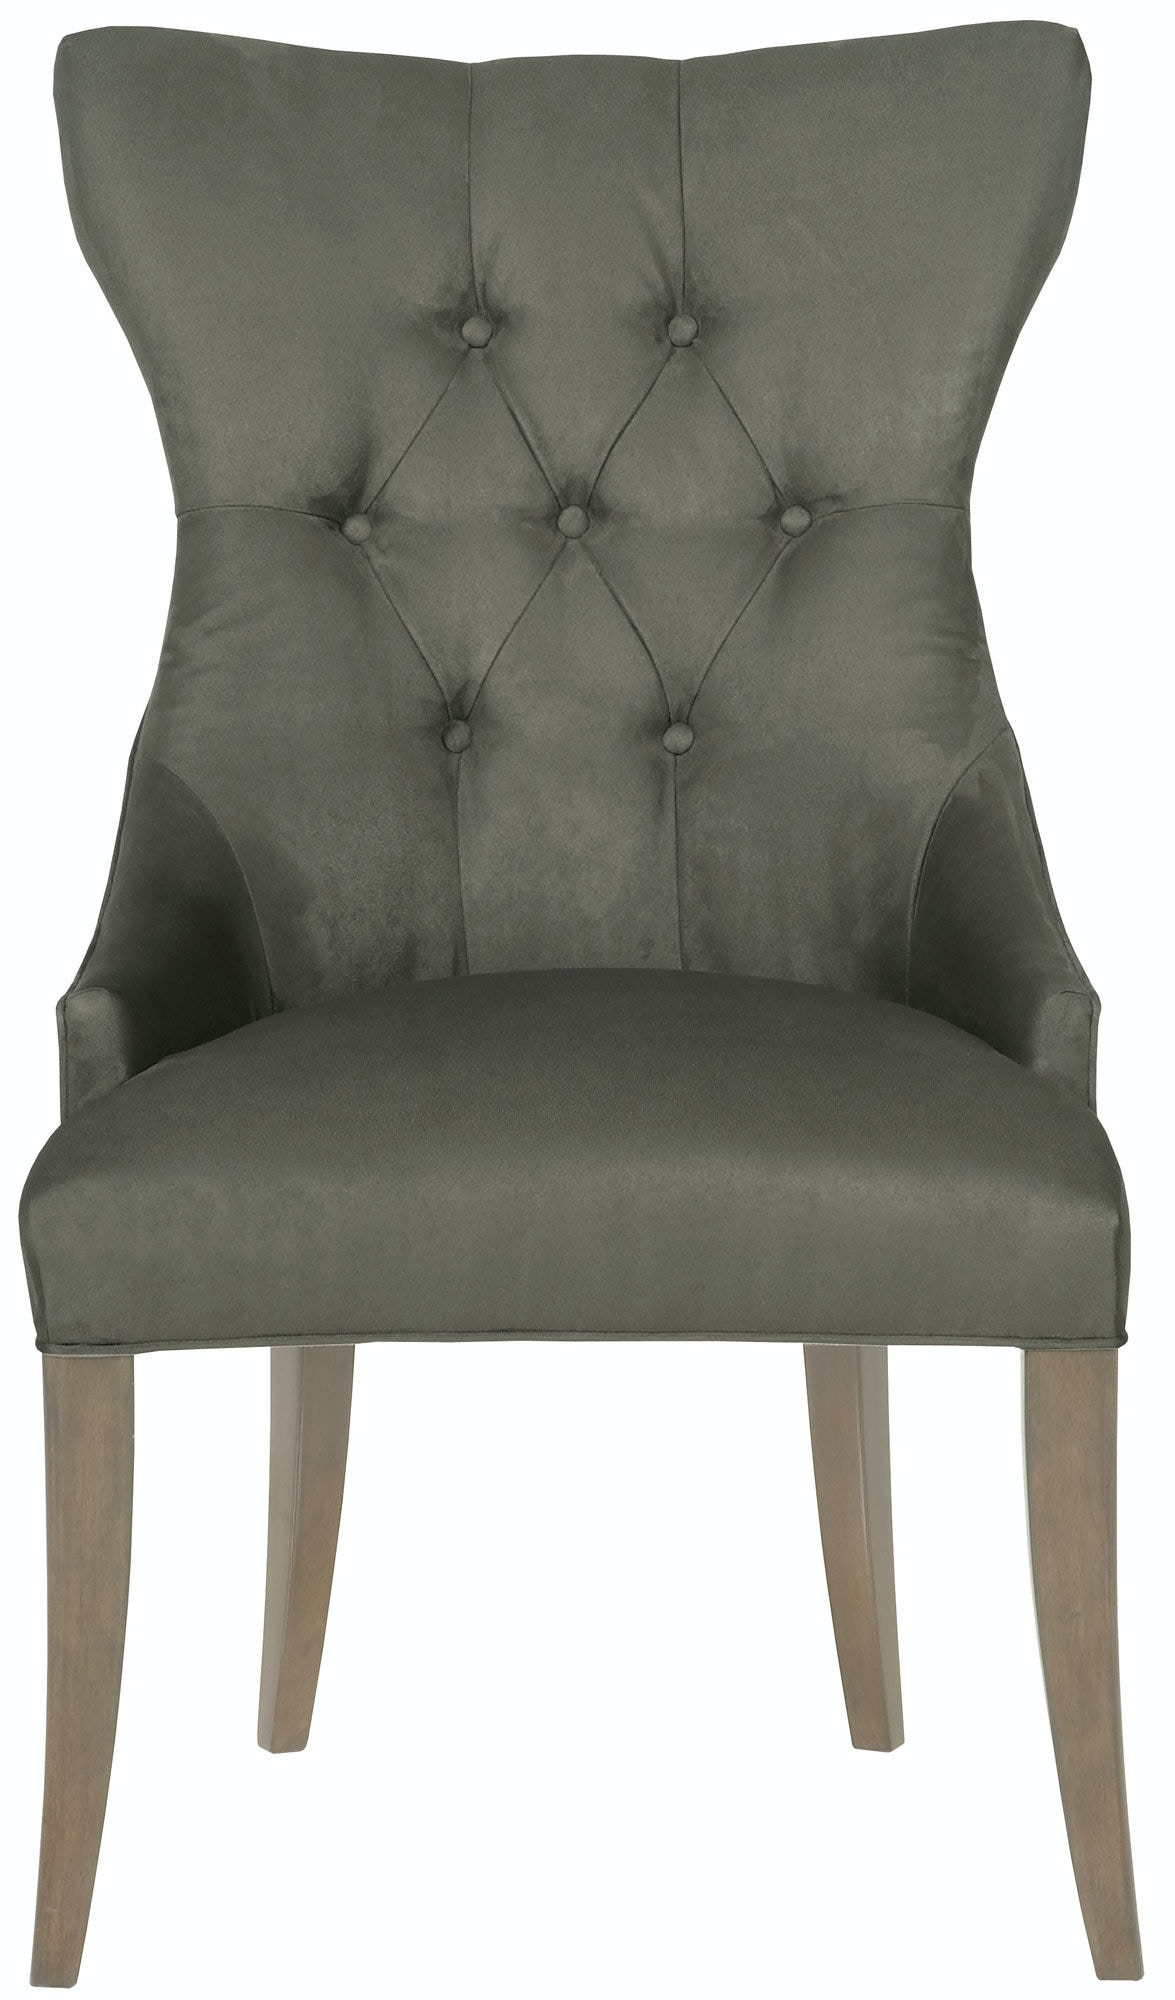 Bernhardt Interiors Tufted Back Chair 319 542A